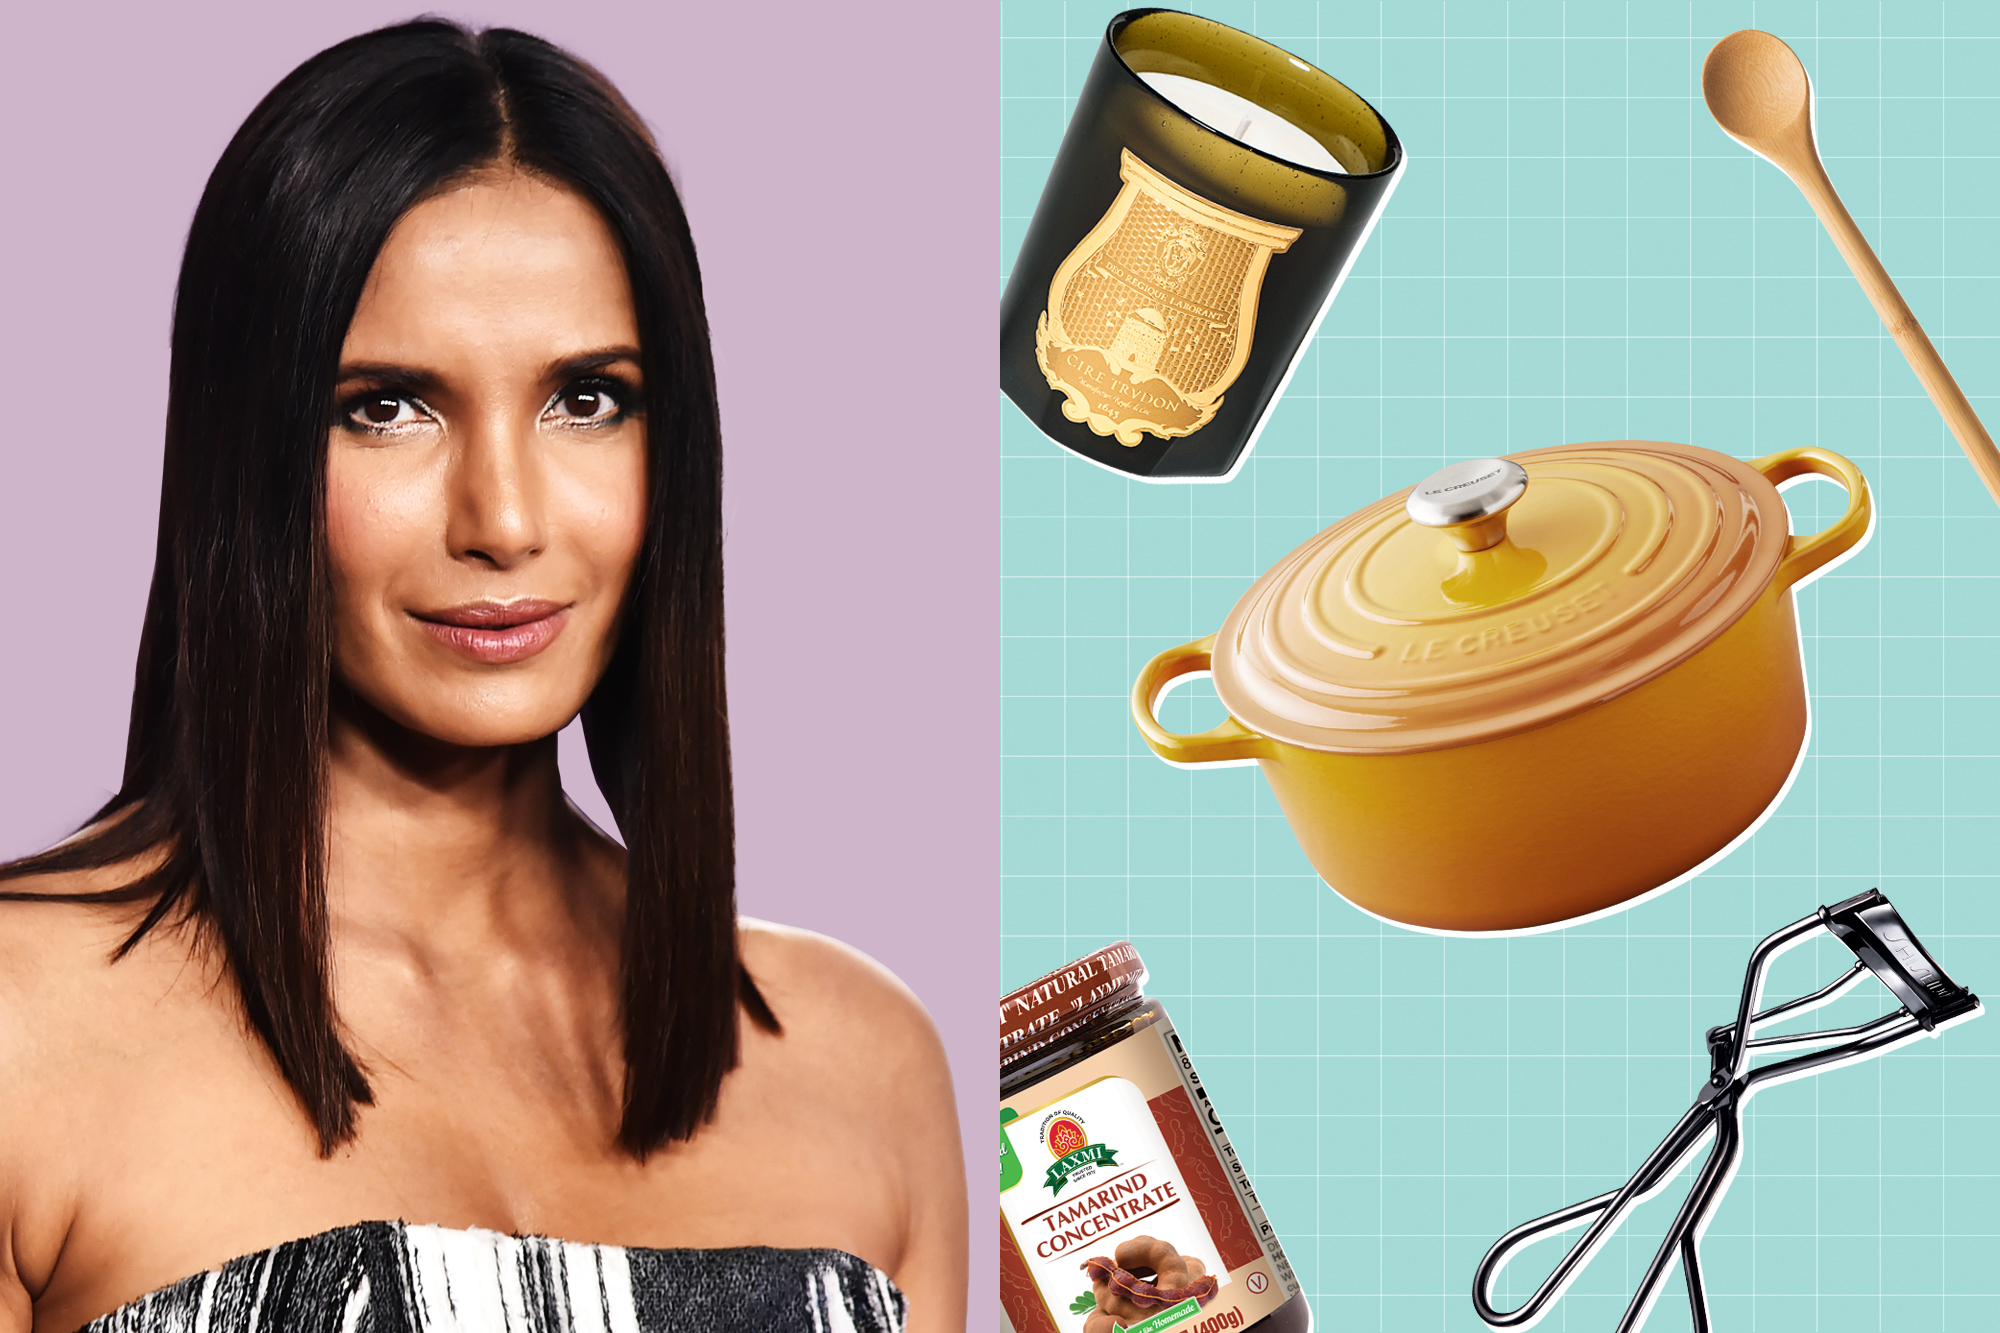 A portrait of Padma Lakshmi with a designed treatment next to a selection of products floating on a designed background